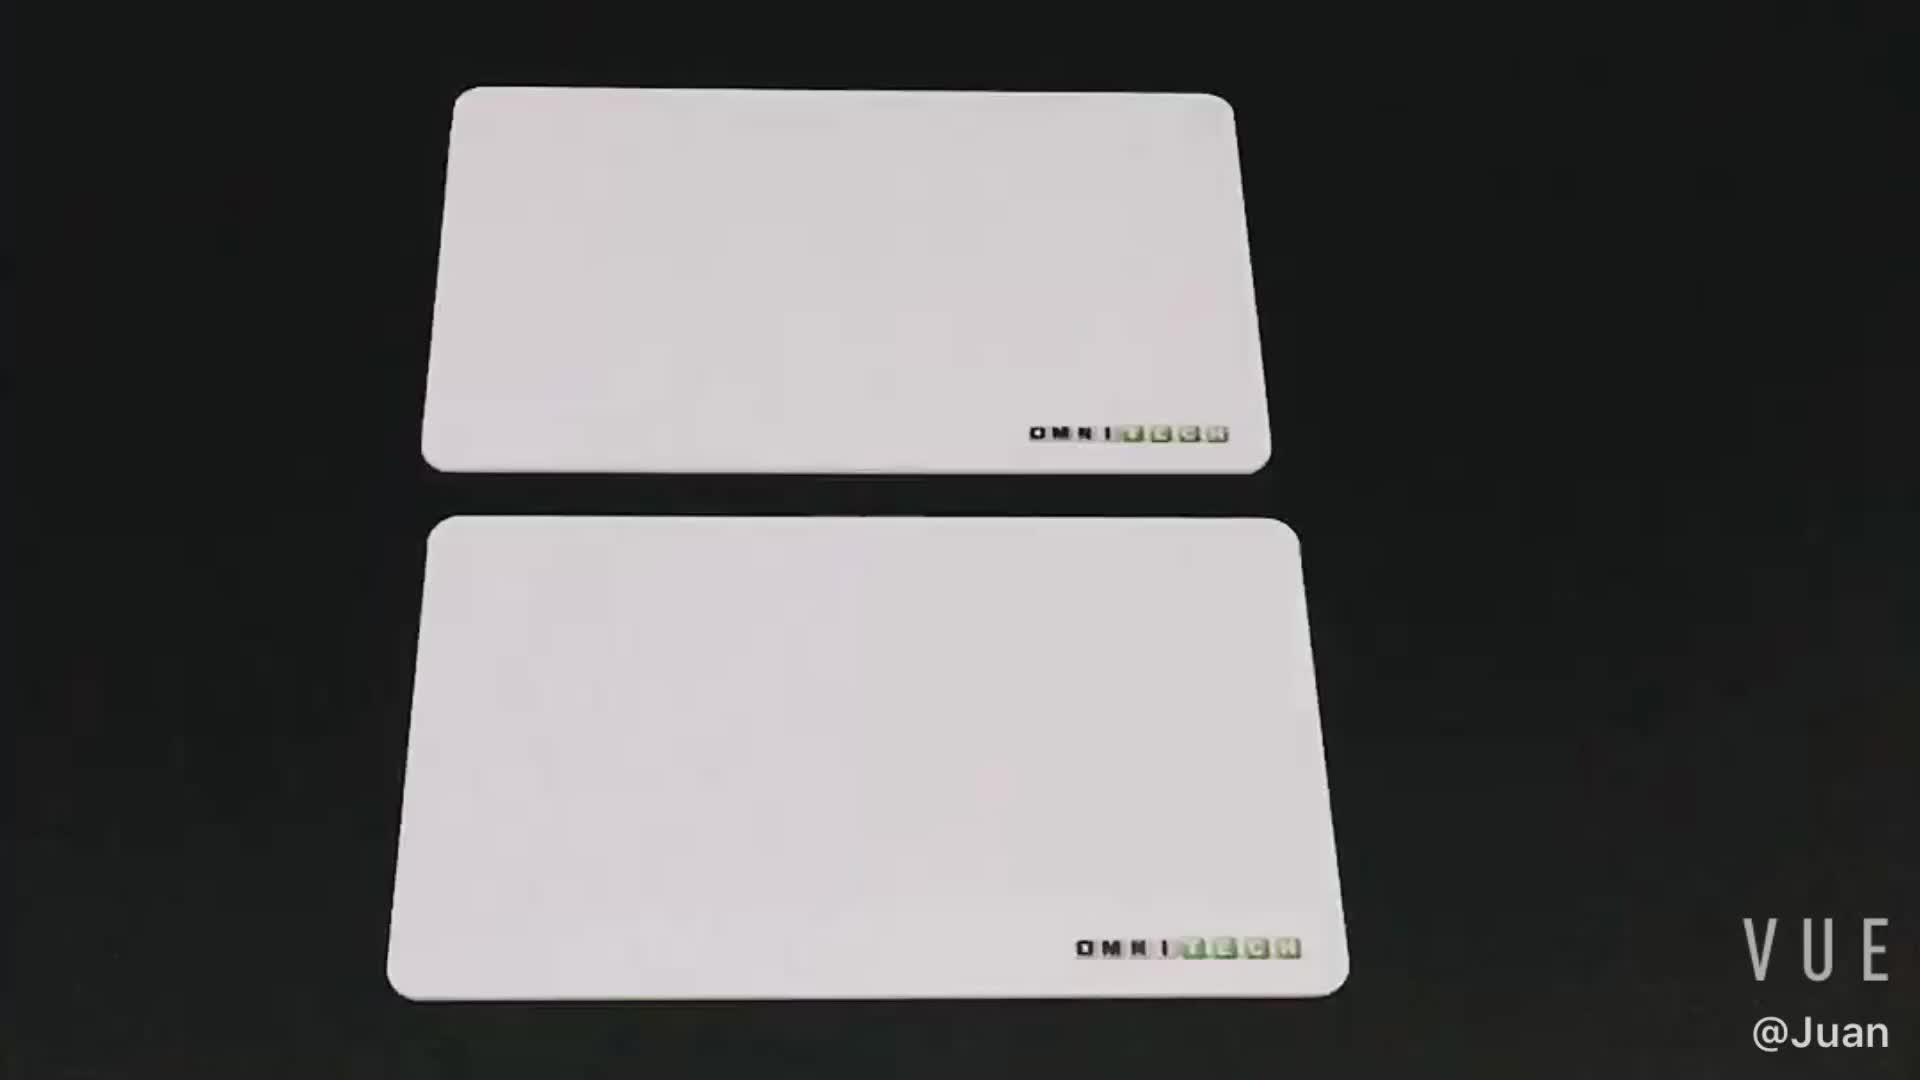 Personalizzato stampa CMYK MIFARE Classic 1K NFC RFID contactless card con banda magnetica